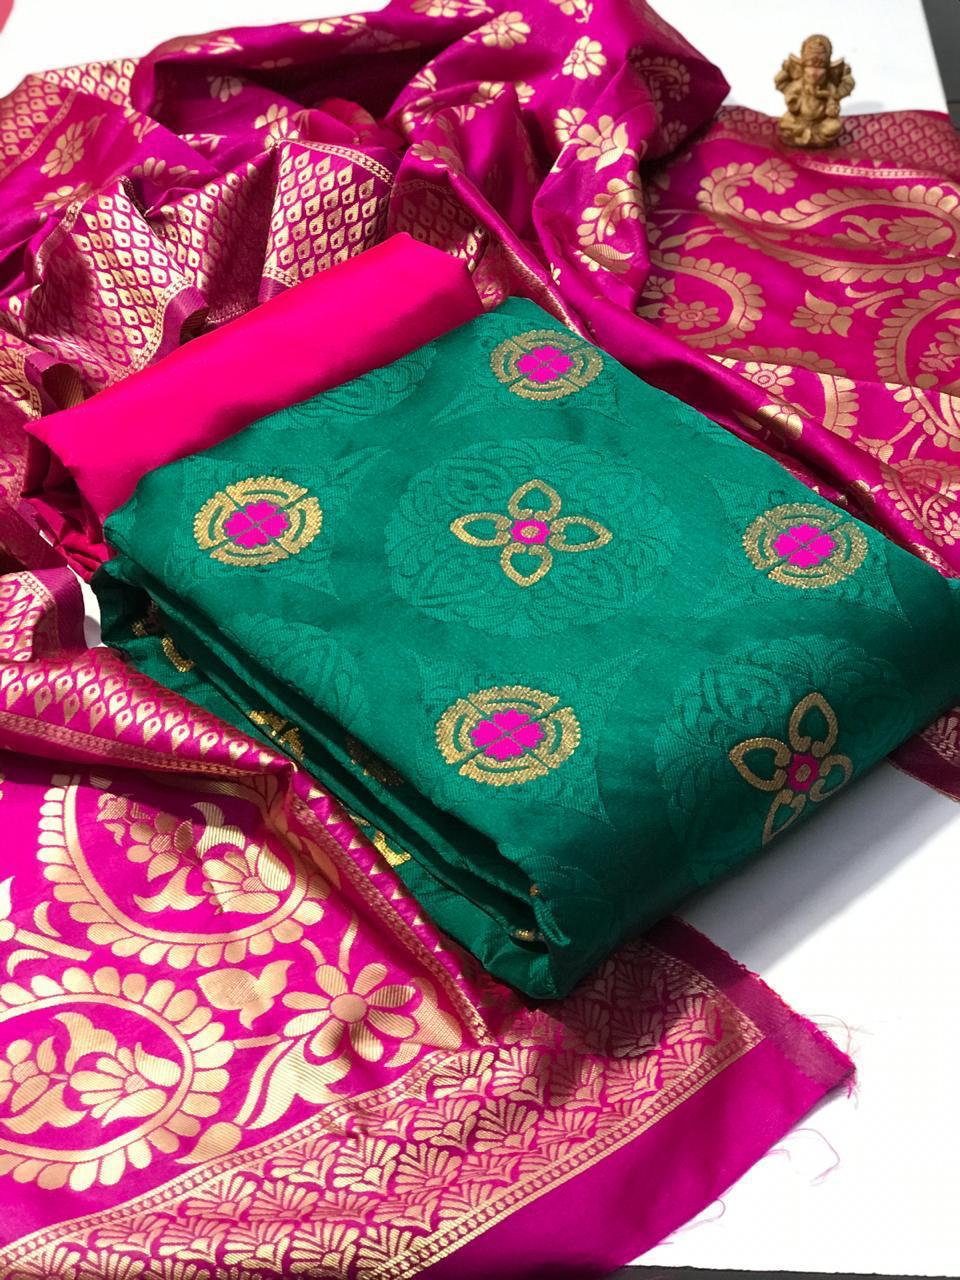 Banarasi Silk Ikkat Banarasi Silk With Jacquard Weaving Dress Material Collection